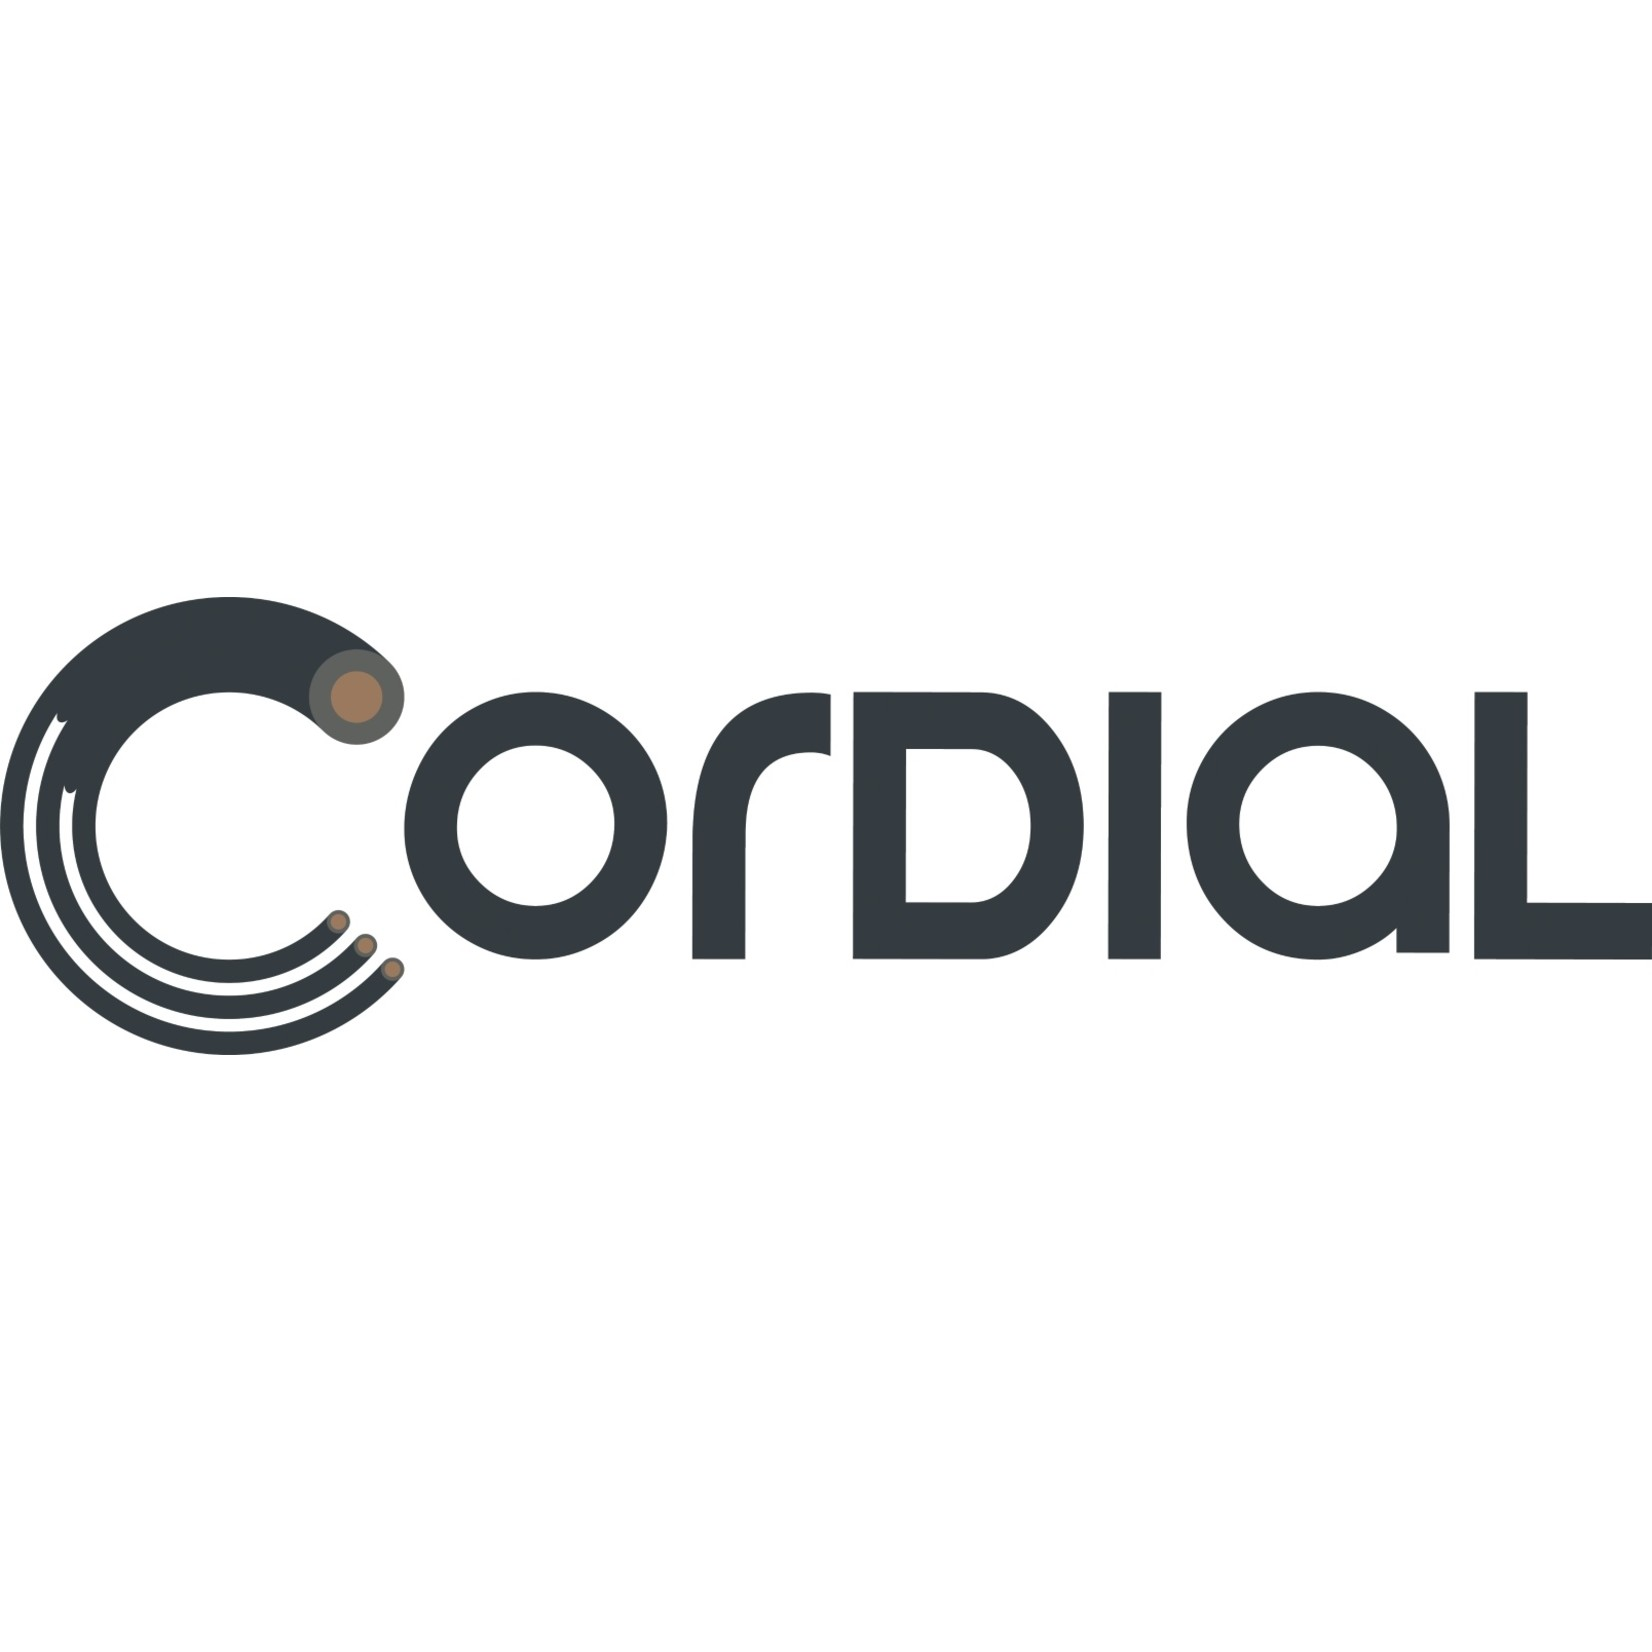 Cordial Cables Cordial Cables 8-Channel Analog Breakout/DMX Control Cable, Essentials Series - TASCAM D-Sub 25-Pin Male to 8 3-Pin XLRF Connectors, 16-Foot Cable